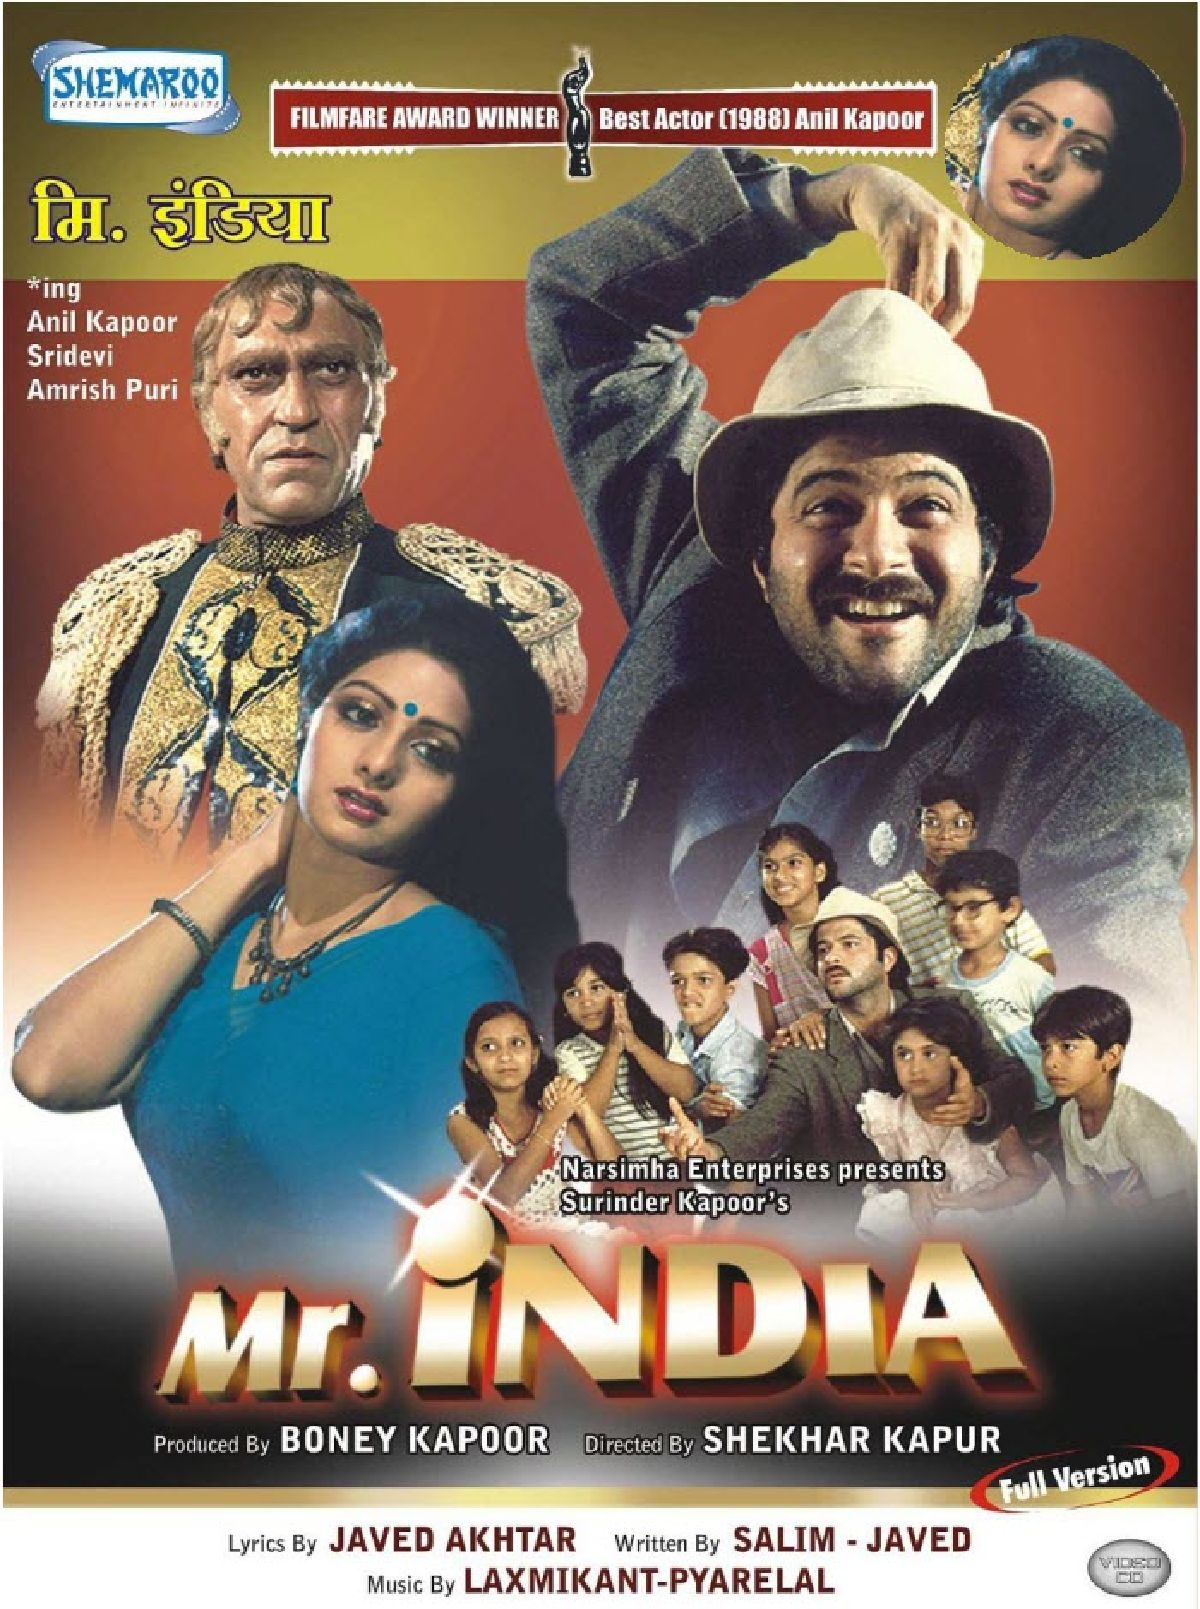 'Mr India' movie poster